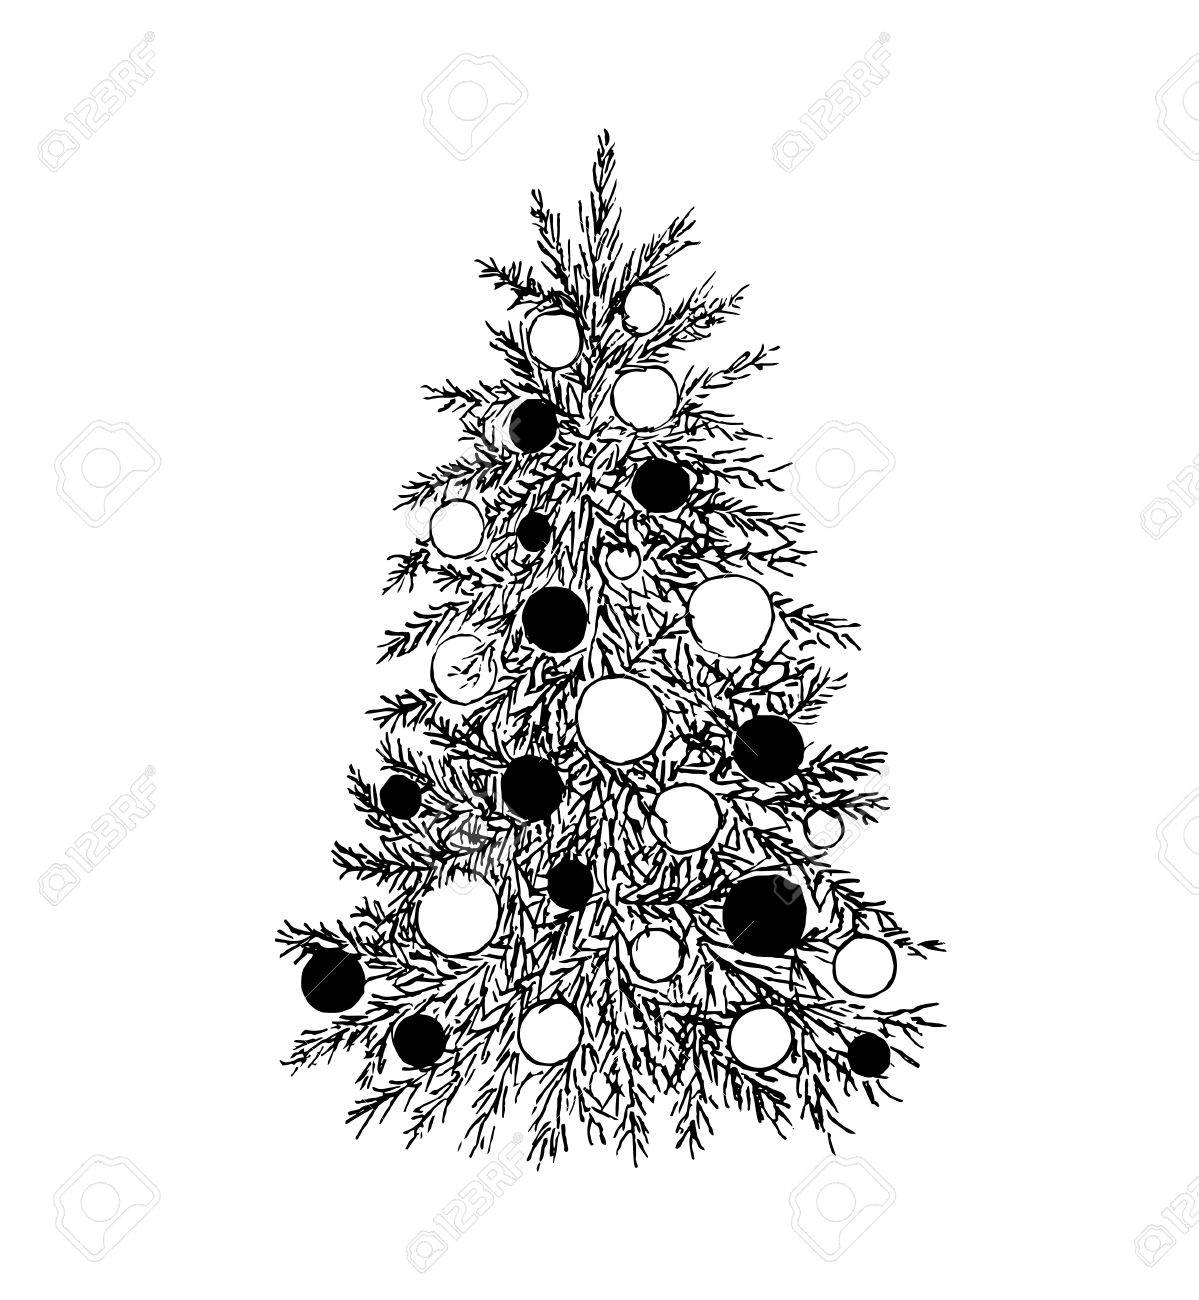 Hand Drawn Evergreen Tree With Decorations Sketch Spruce Fir Fur Pine